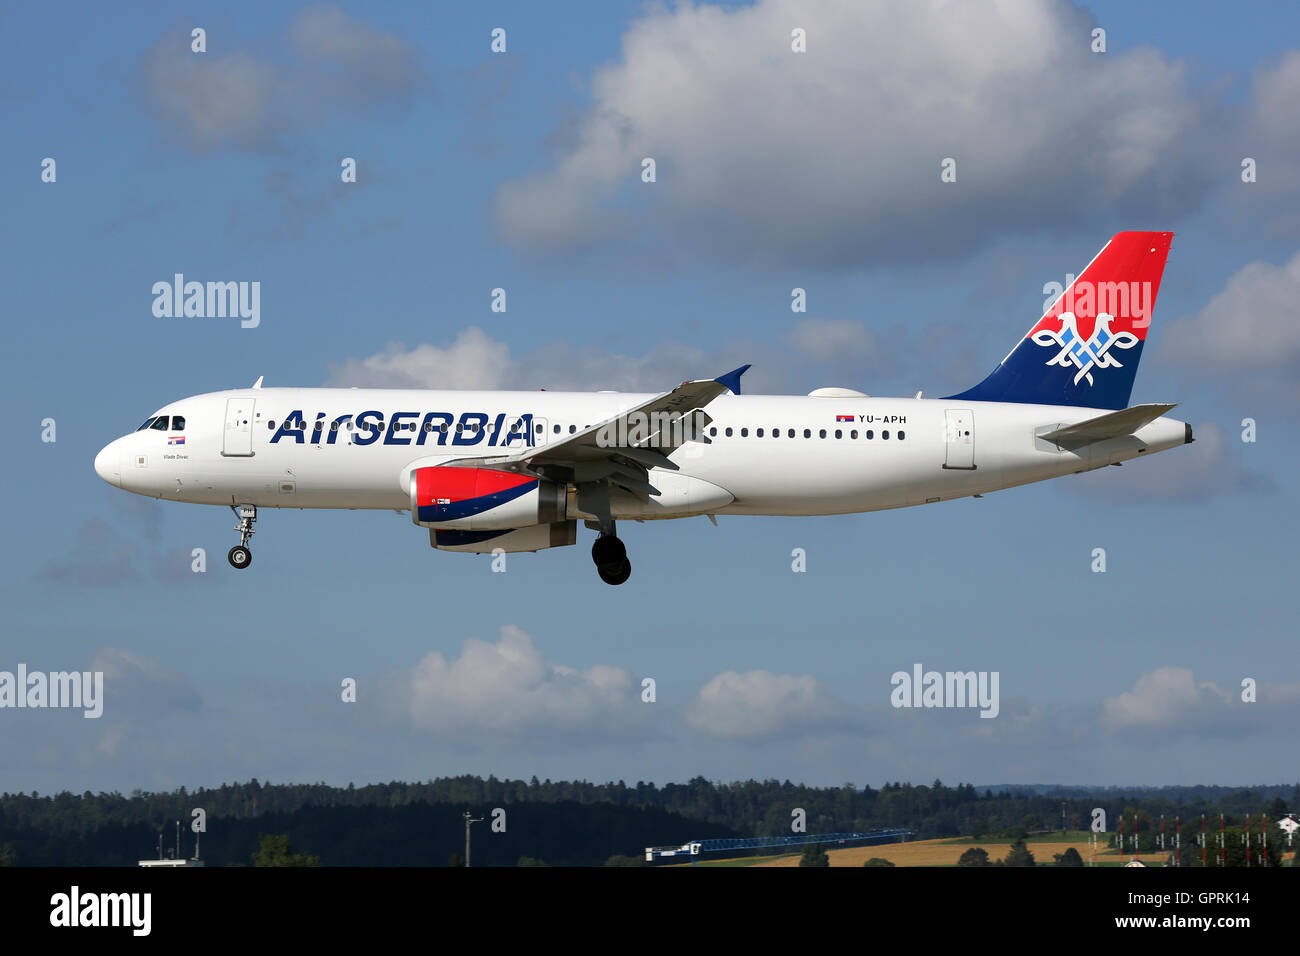 Zurich, Switzerland - July 29, 2016: An Air Serbia Airbus A320 with the registration YU-APH landing at Zurich Airport - Stock Image